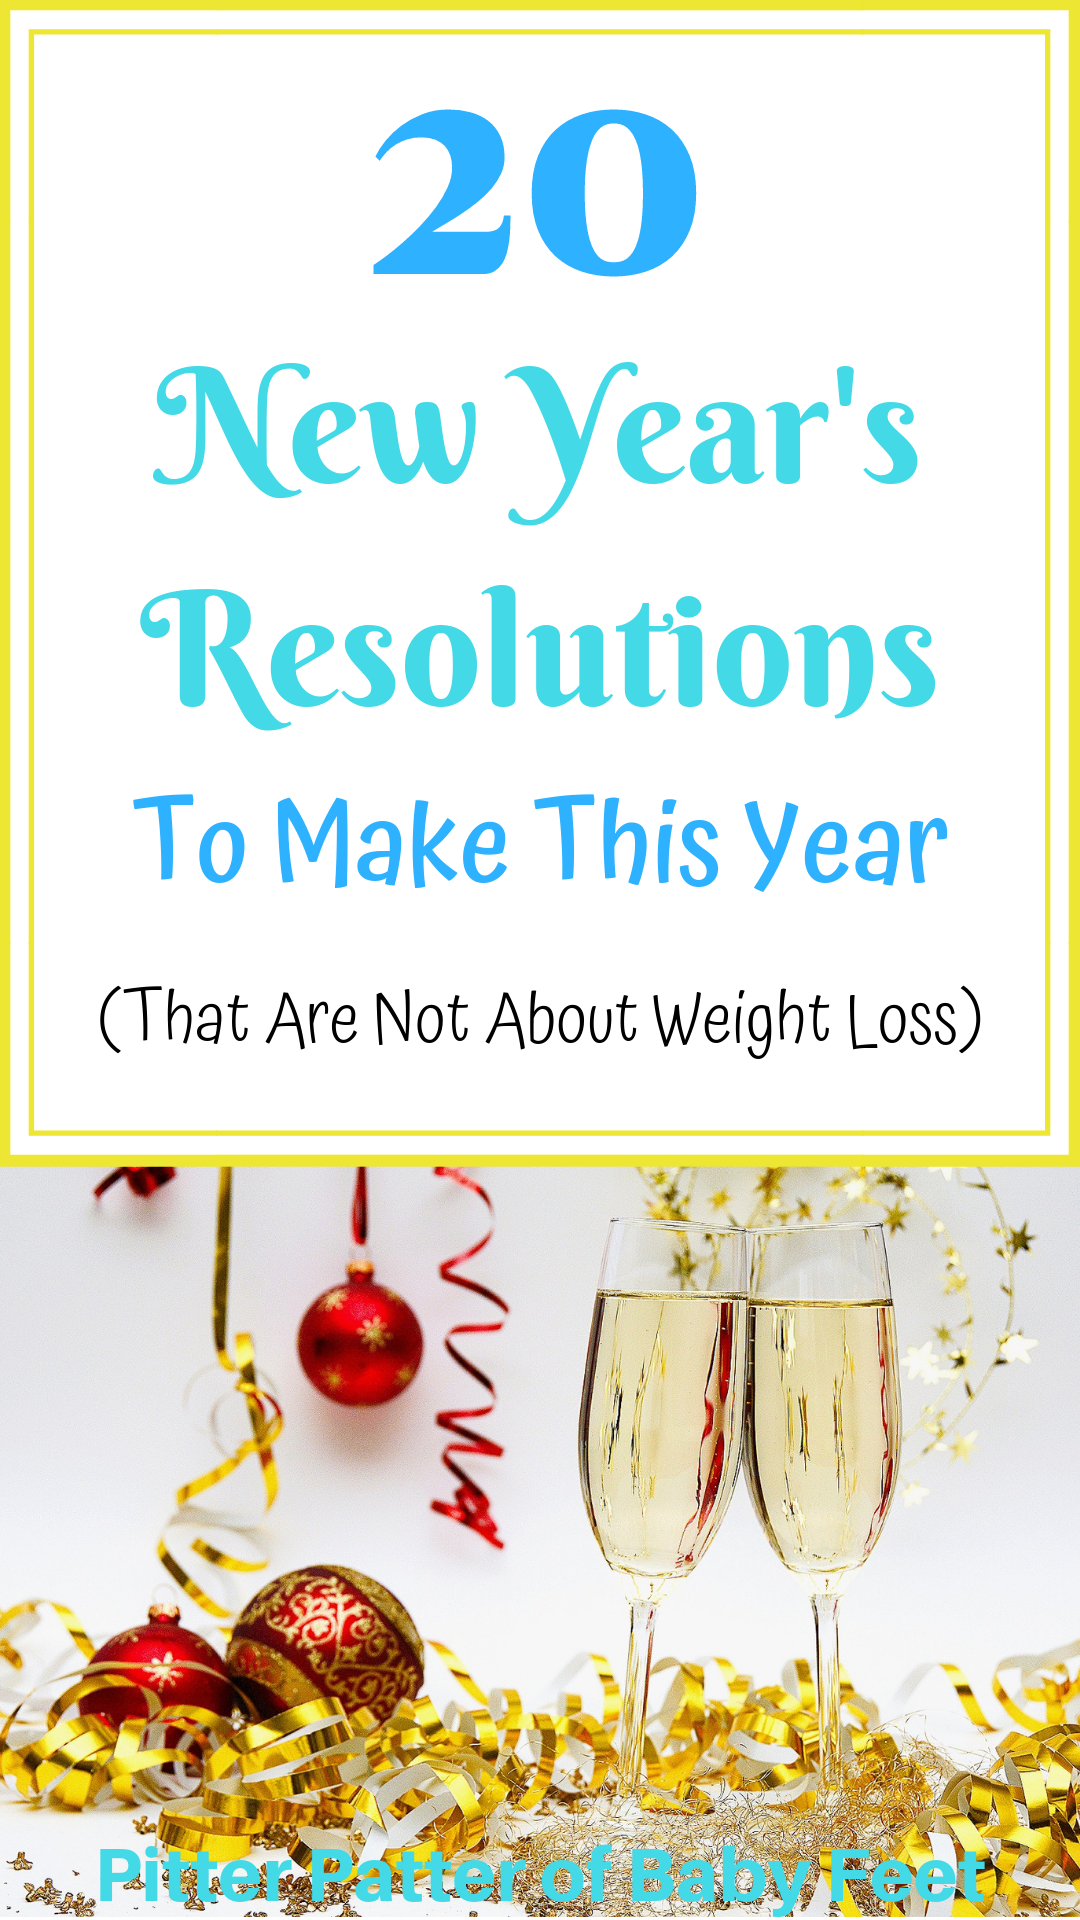 20 New Year's Resolutions To Make This Year New years